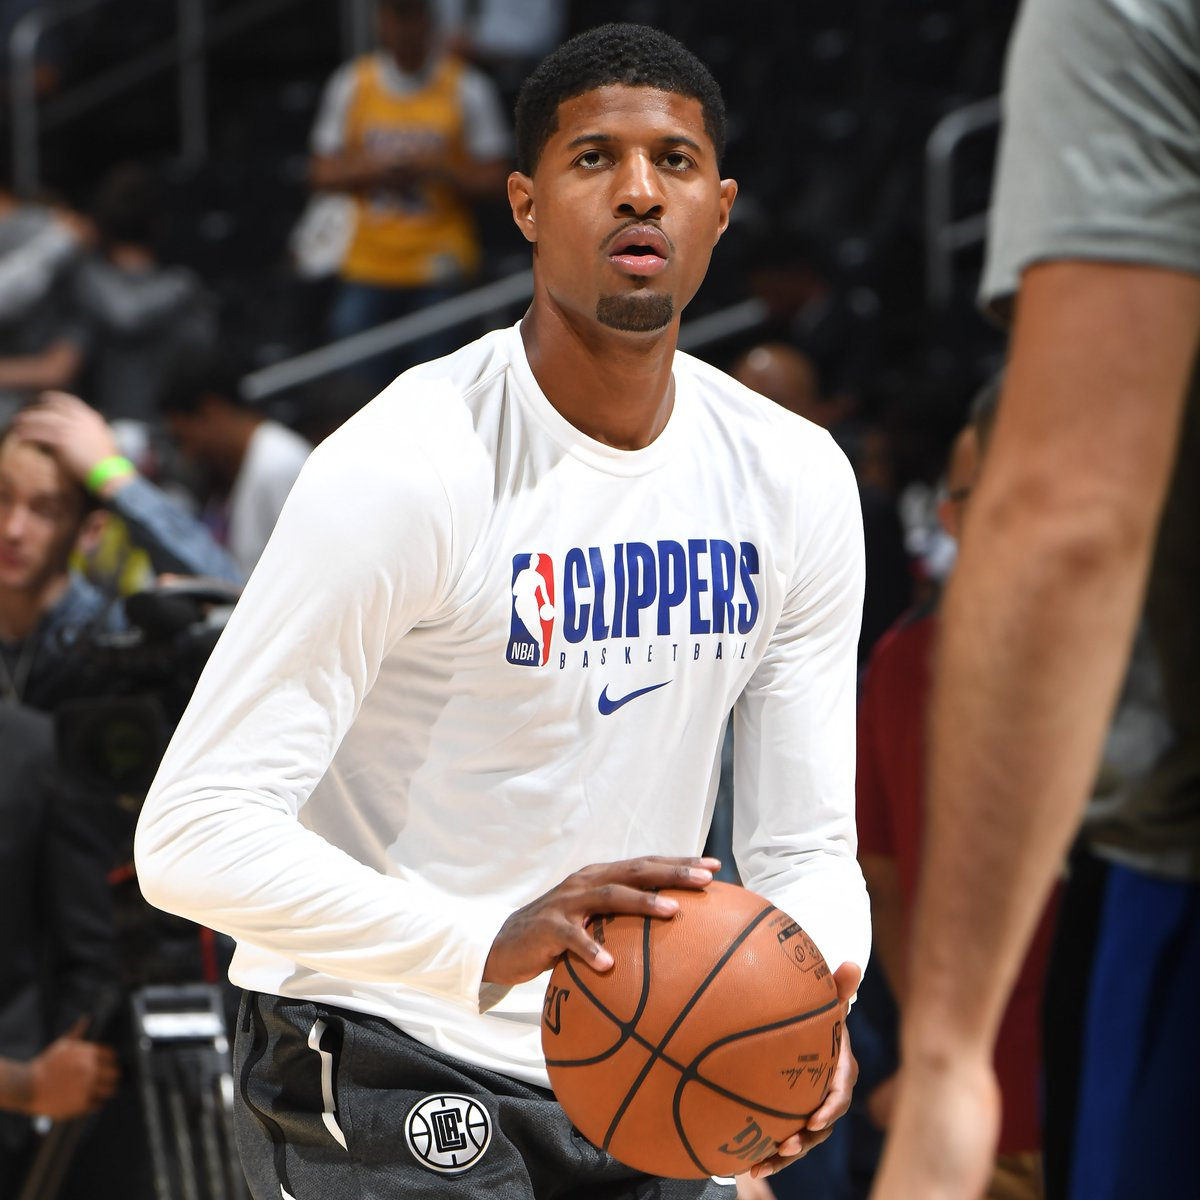 PG is back! 👏  Paul George makes his @LAClippers debut tonight! How many fantasy points will he drop?